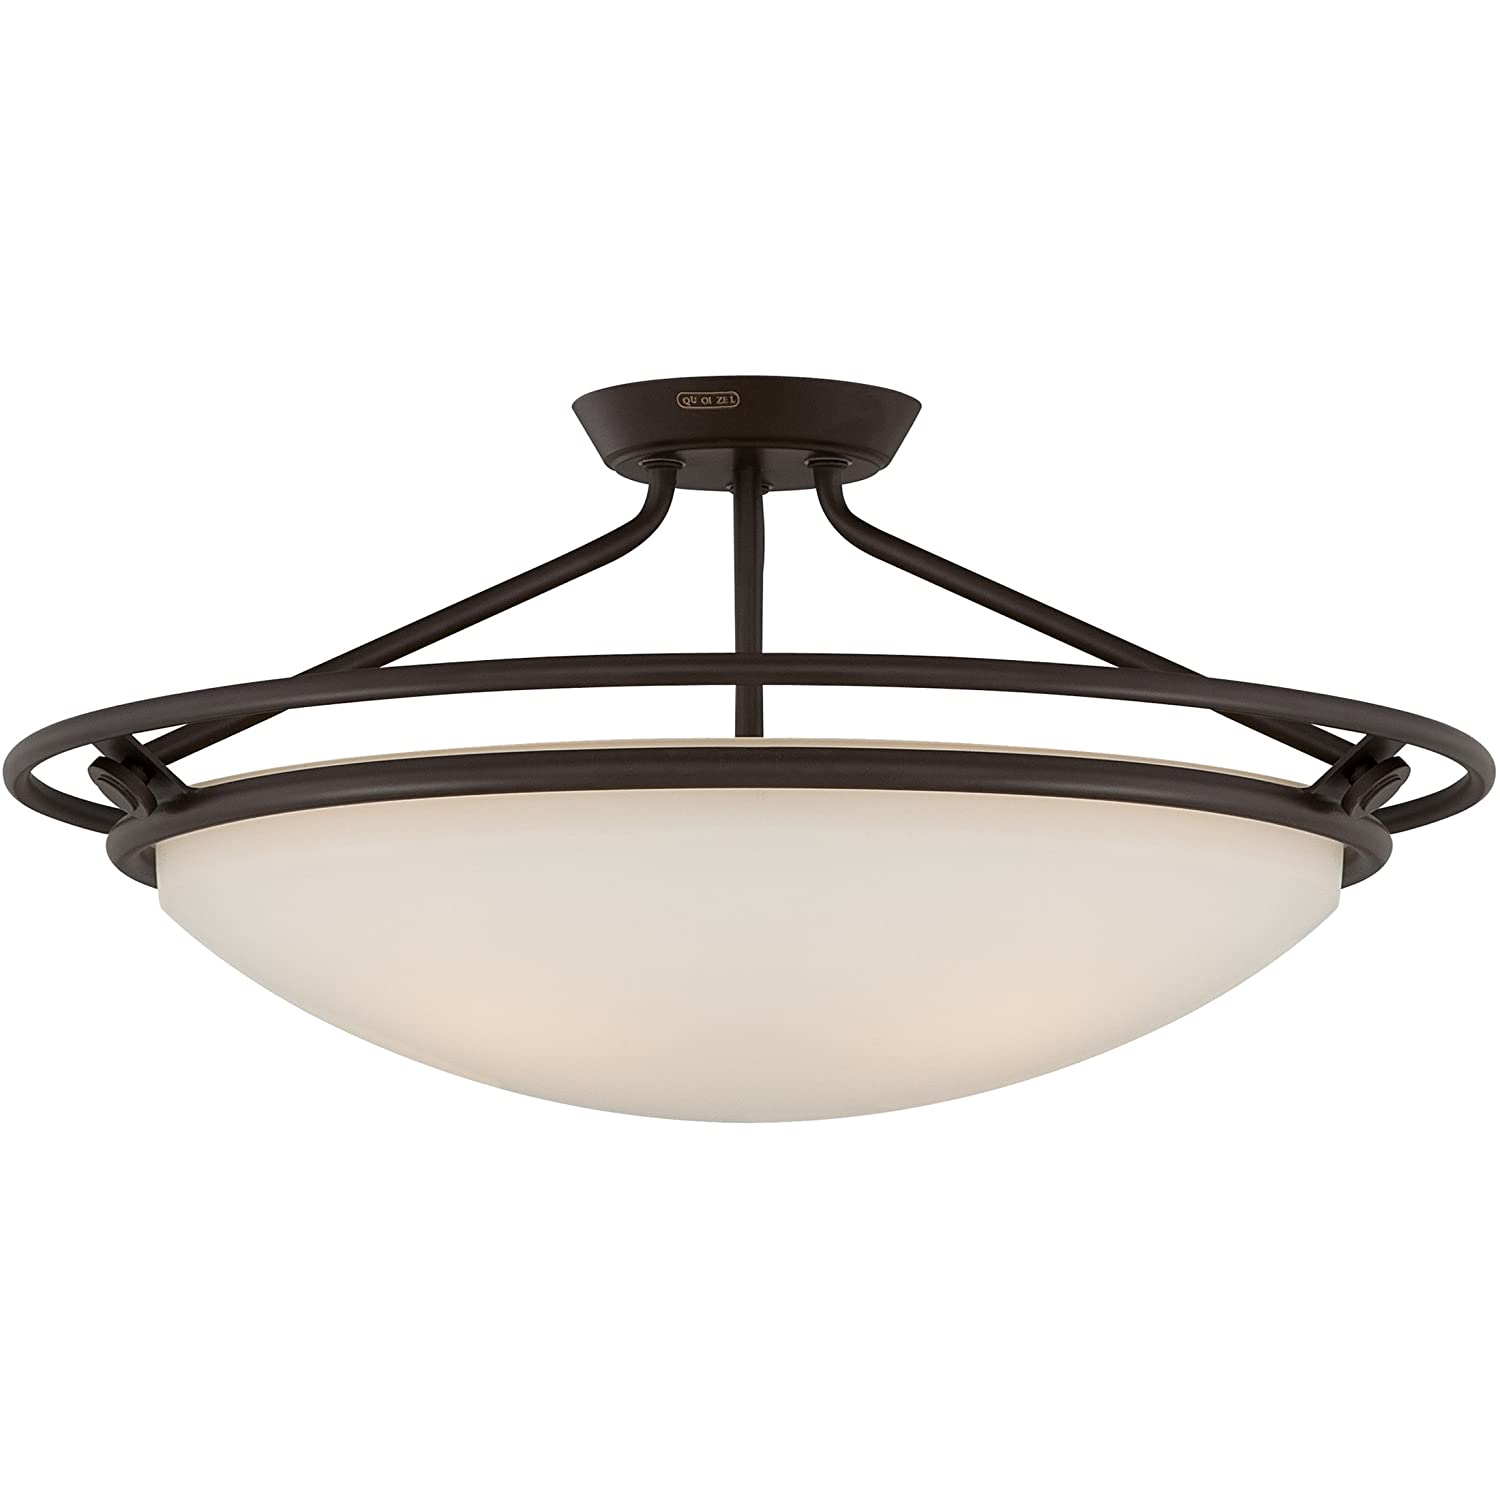 Quoizel Qf1201swt Bowl Semi Flush Ceiling Lighting Western Bronze 4 Light Western Bronze 12 H X